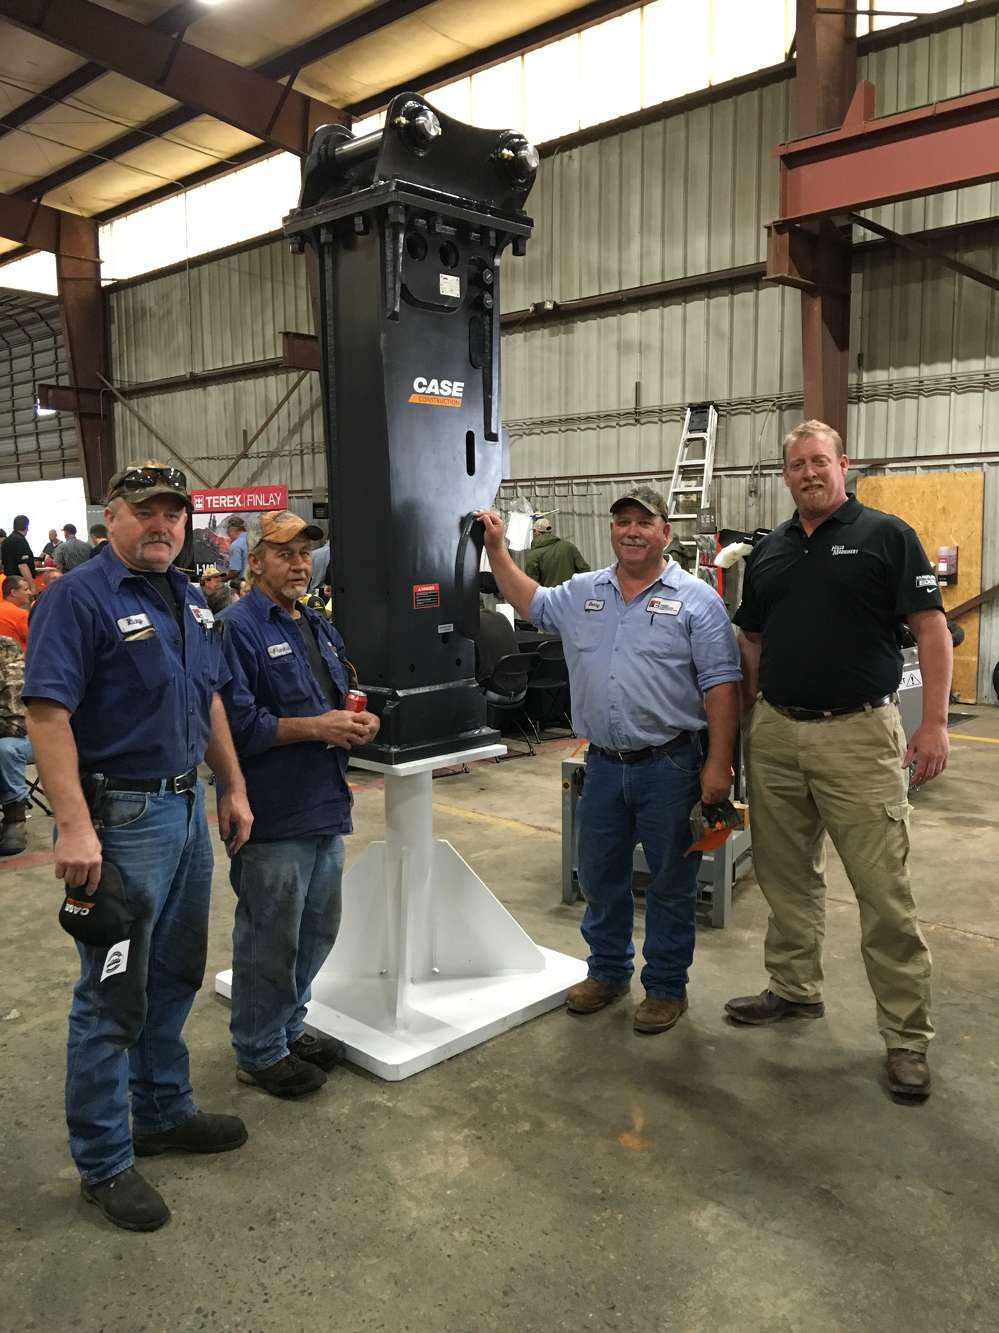 Cameron Waugh (R) with Hills Machinery goes over the Case 5,000 lb. hammer with (L-R) Rickey Osborne, Frankie Pittman and Danny Biggers, all of Ferebee Corporation in Charlotte.